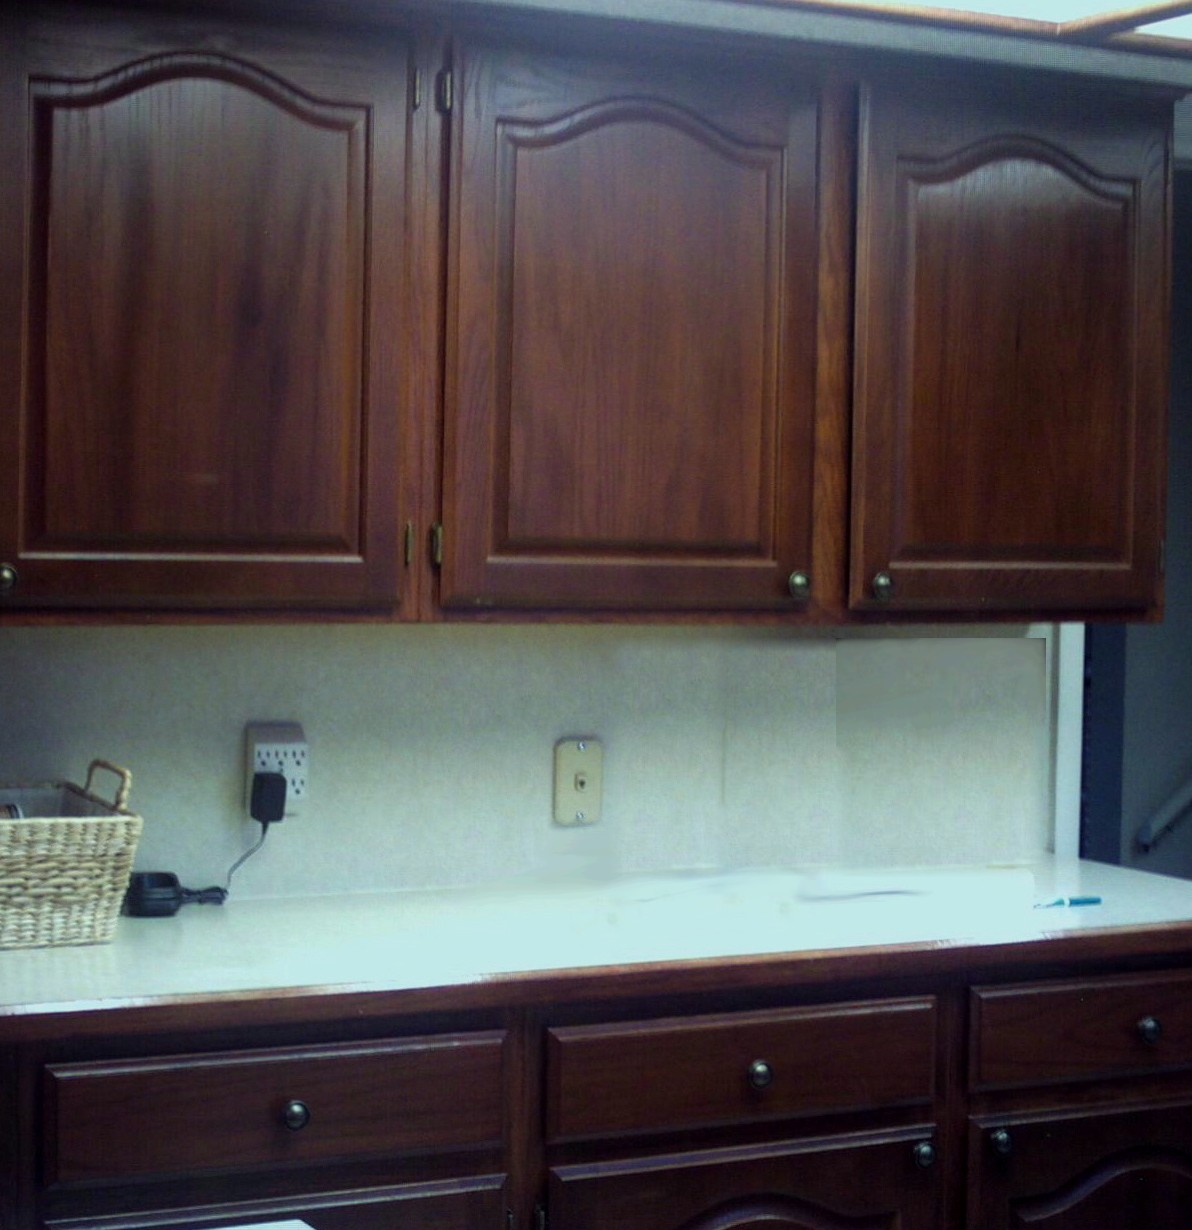 Superbe Kitchen Cabinets And Cupboards Refinished In Cherry Wood Color.